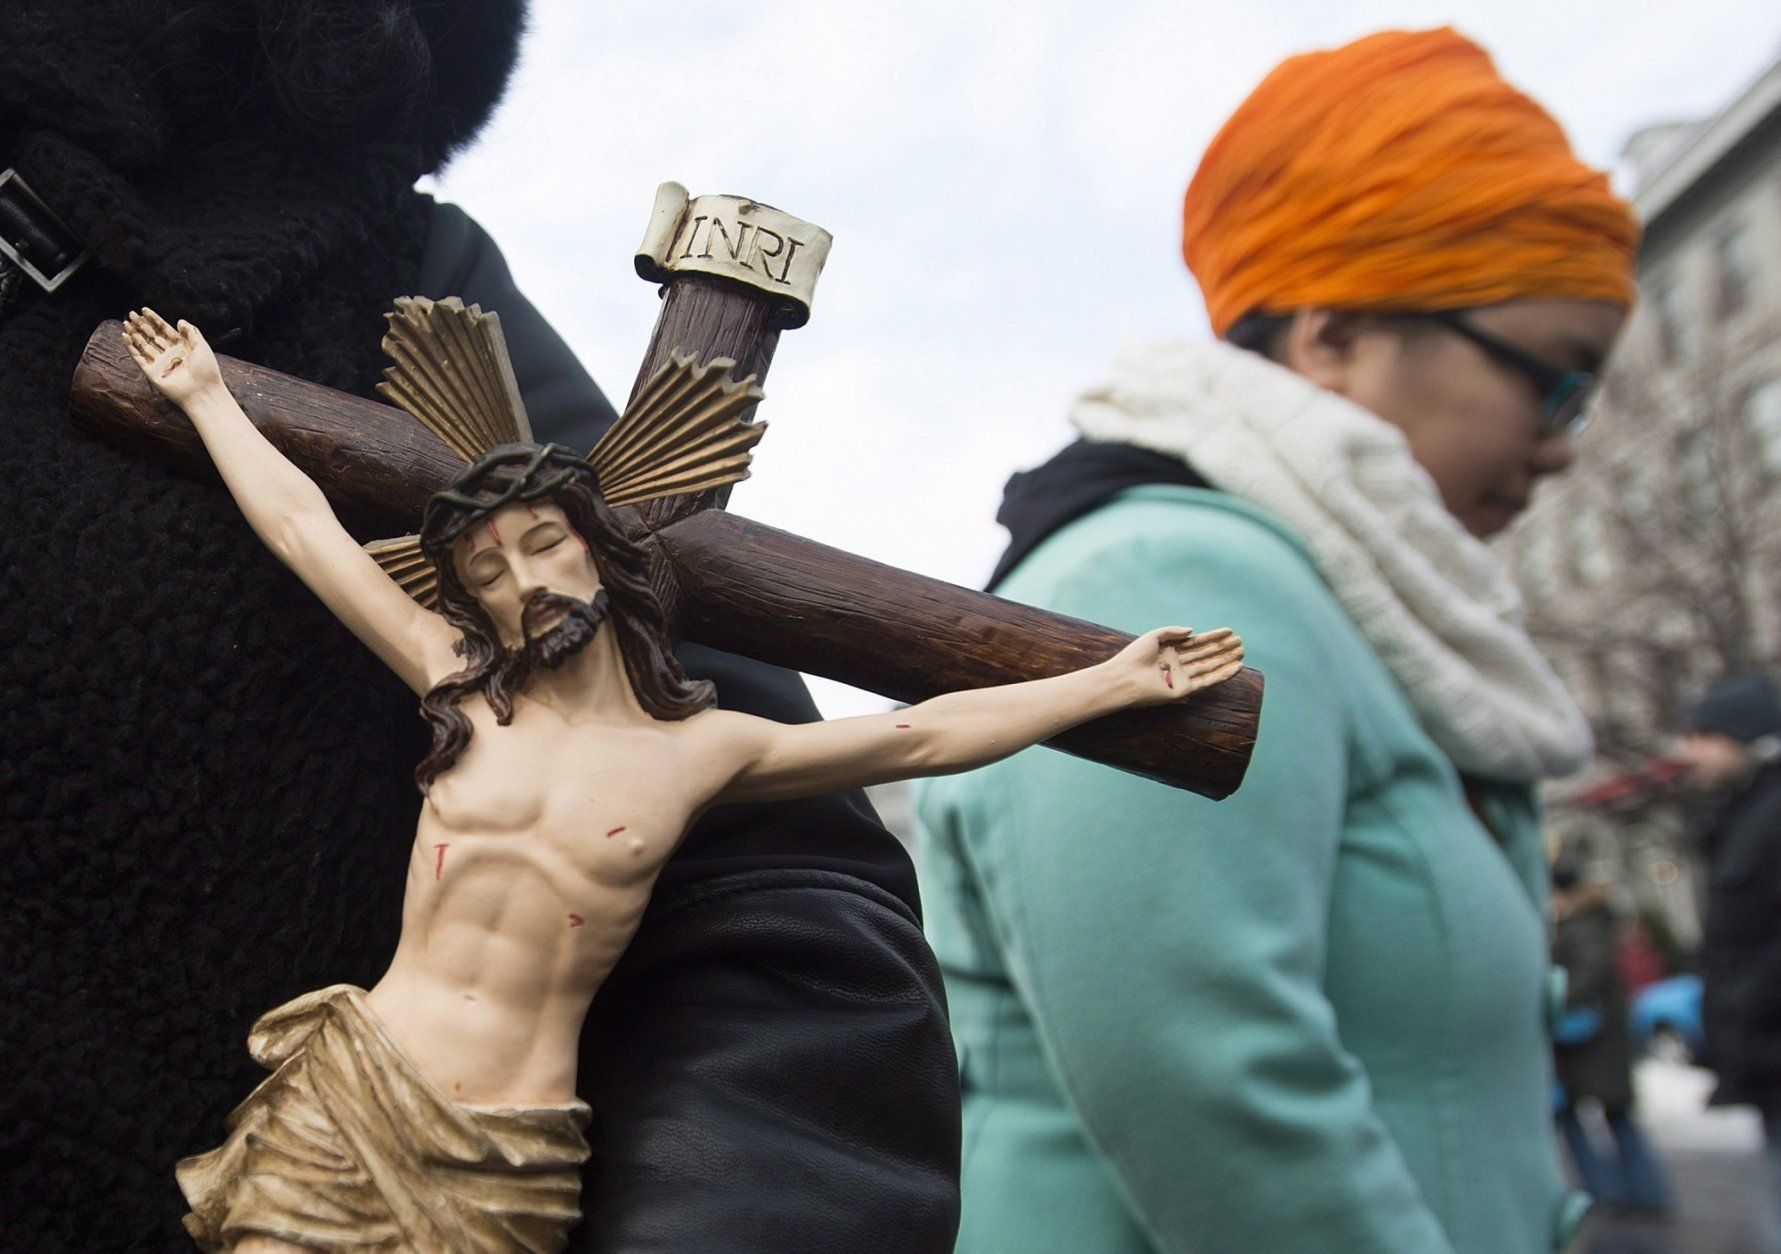 In this Sunday, Jan. 12, 2014, photo, a woman holds a crucifix during a gathering in Montreal to oppose the proposed Quebec Values Charter. A proposal to ban many public employees from wearing religious symbols, Bill 21, is creating a fiery debate in the Canadian province of Quebec. Bill 21 is Quebec's fourth legislative attempt since 2011 to regulate the wearing of religious symbols for people working in the public sphere, and for the first time it invokes a constitutional clause allowing local governments to override some constitutional rights. (Graham Hughes/The Canadian Press via AP)